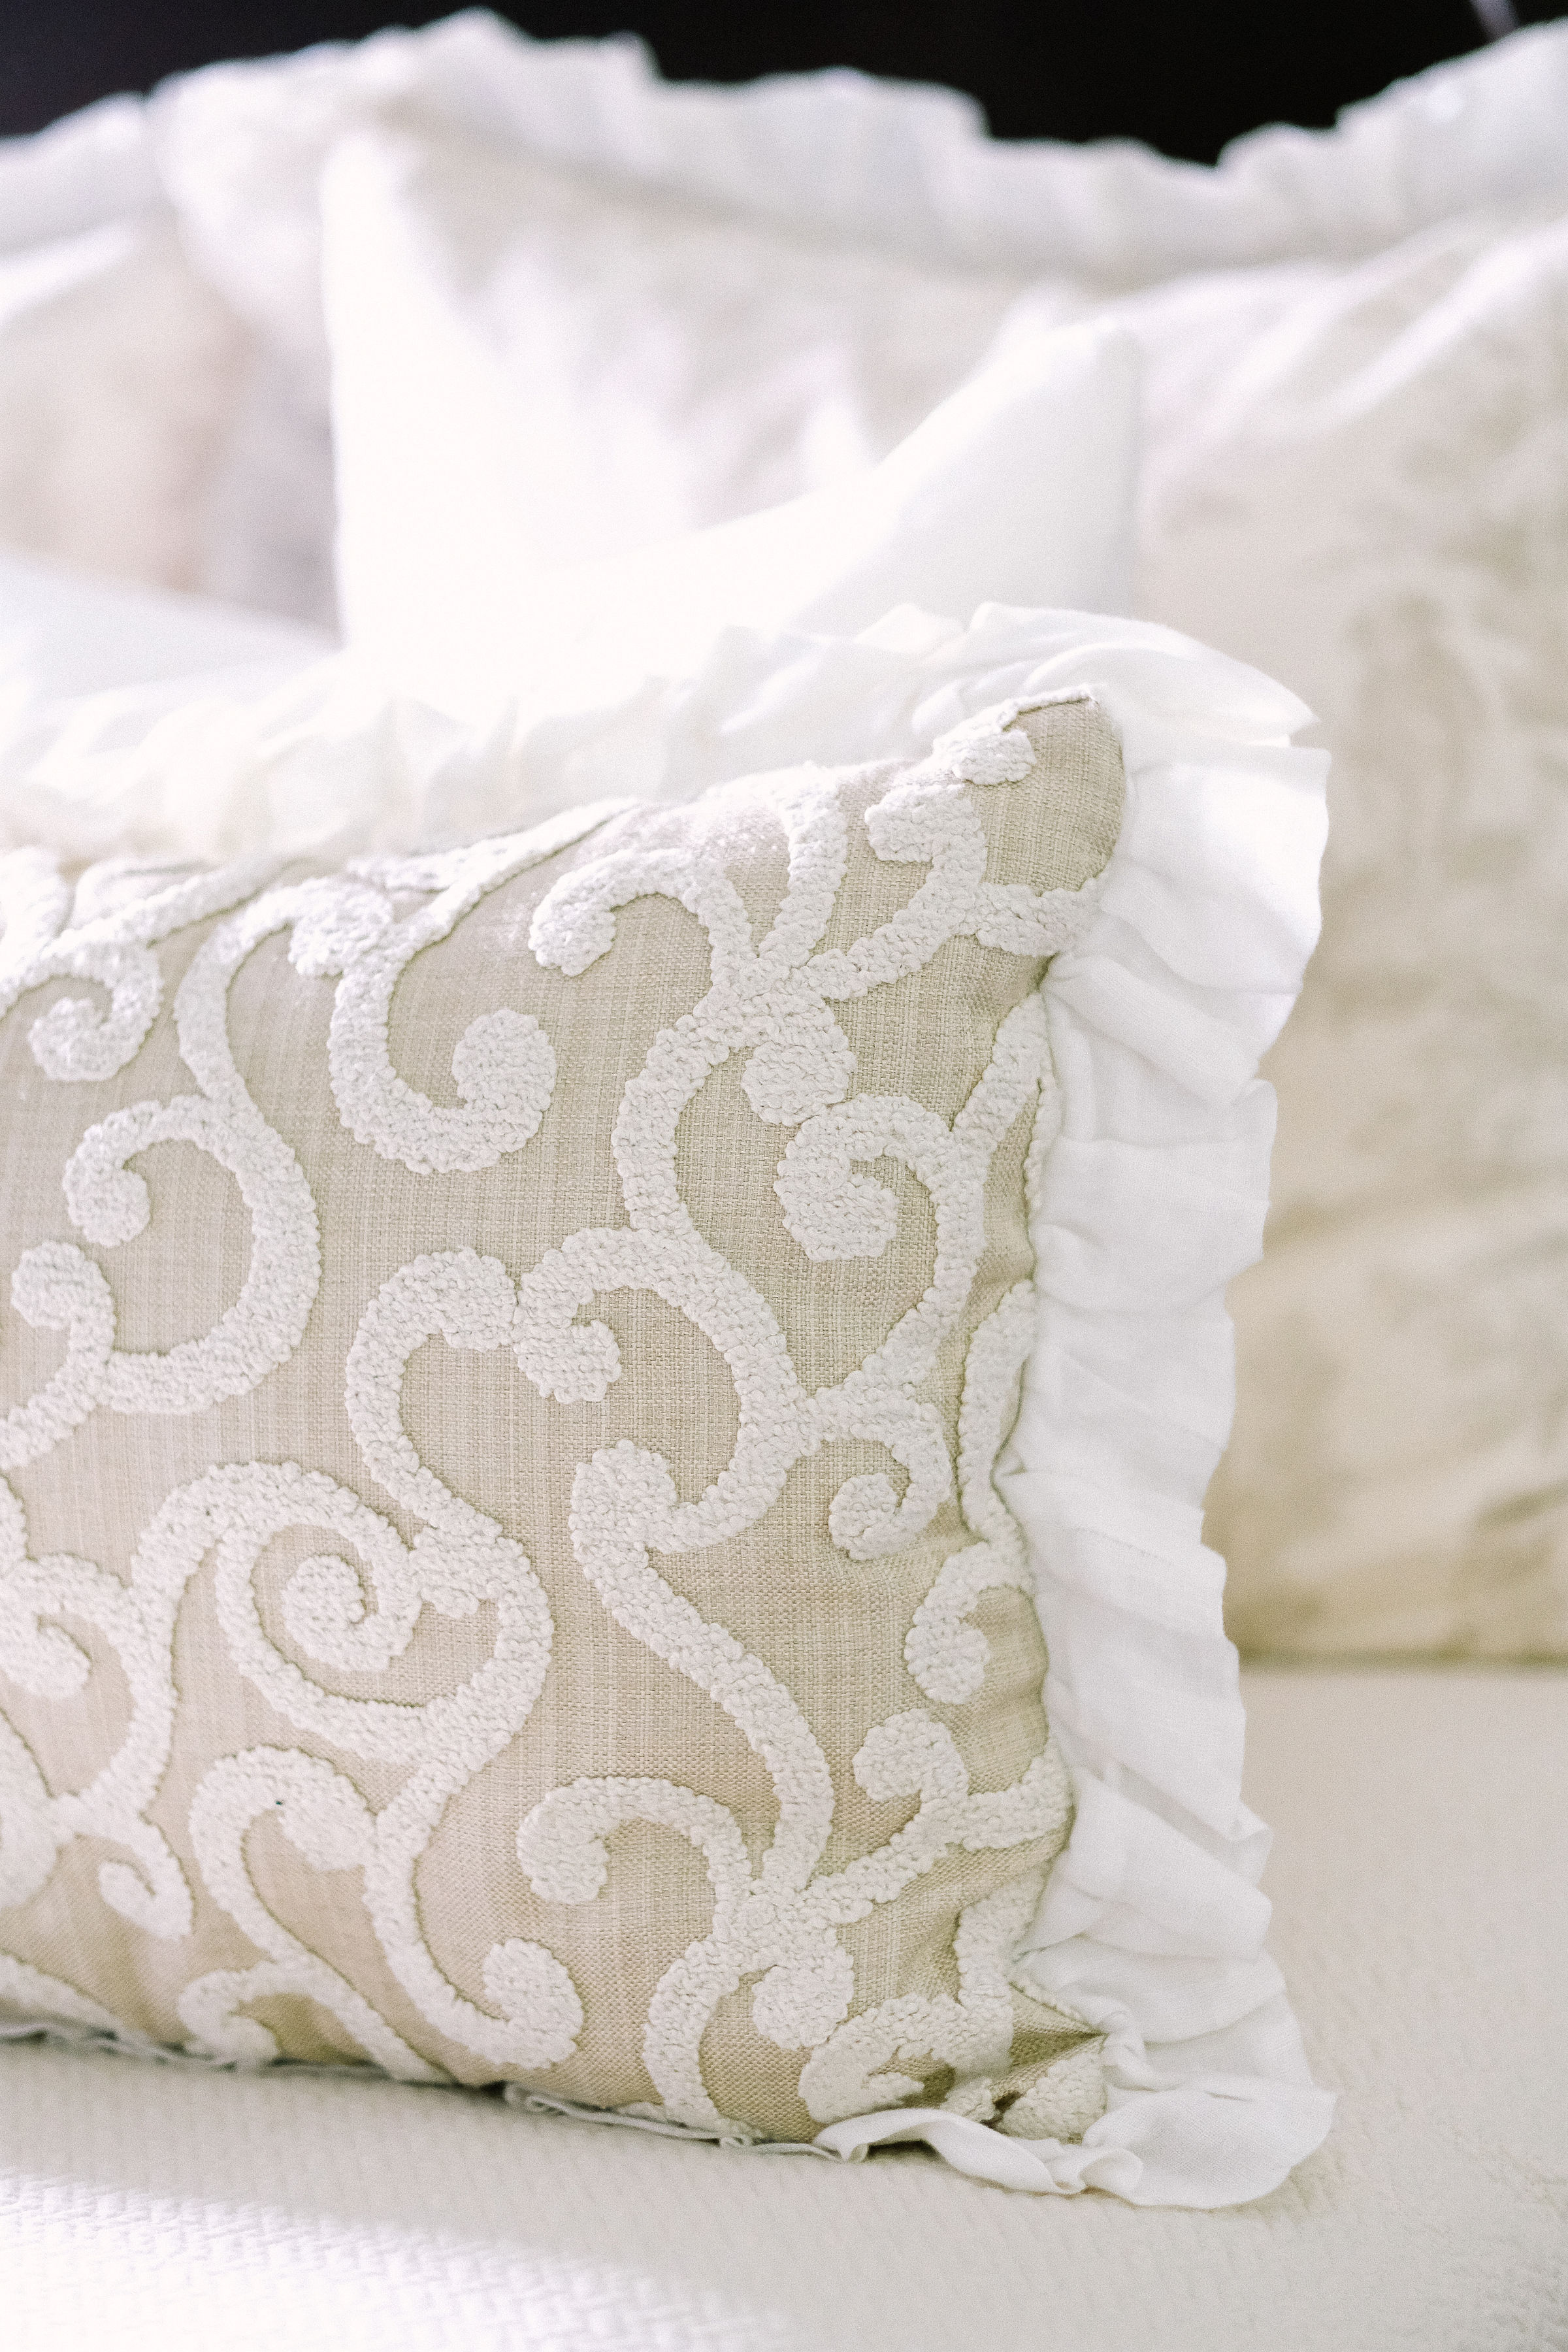 How To Arrange Pillows On A King Or Queen Size Bed Hadley Court